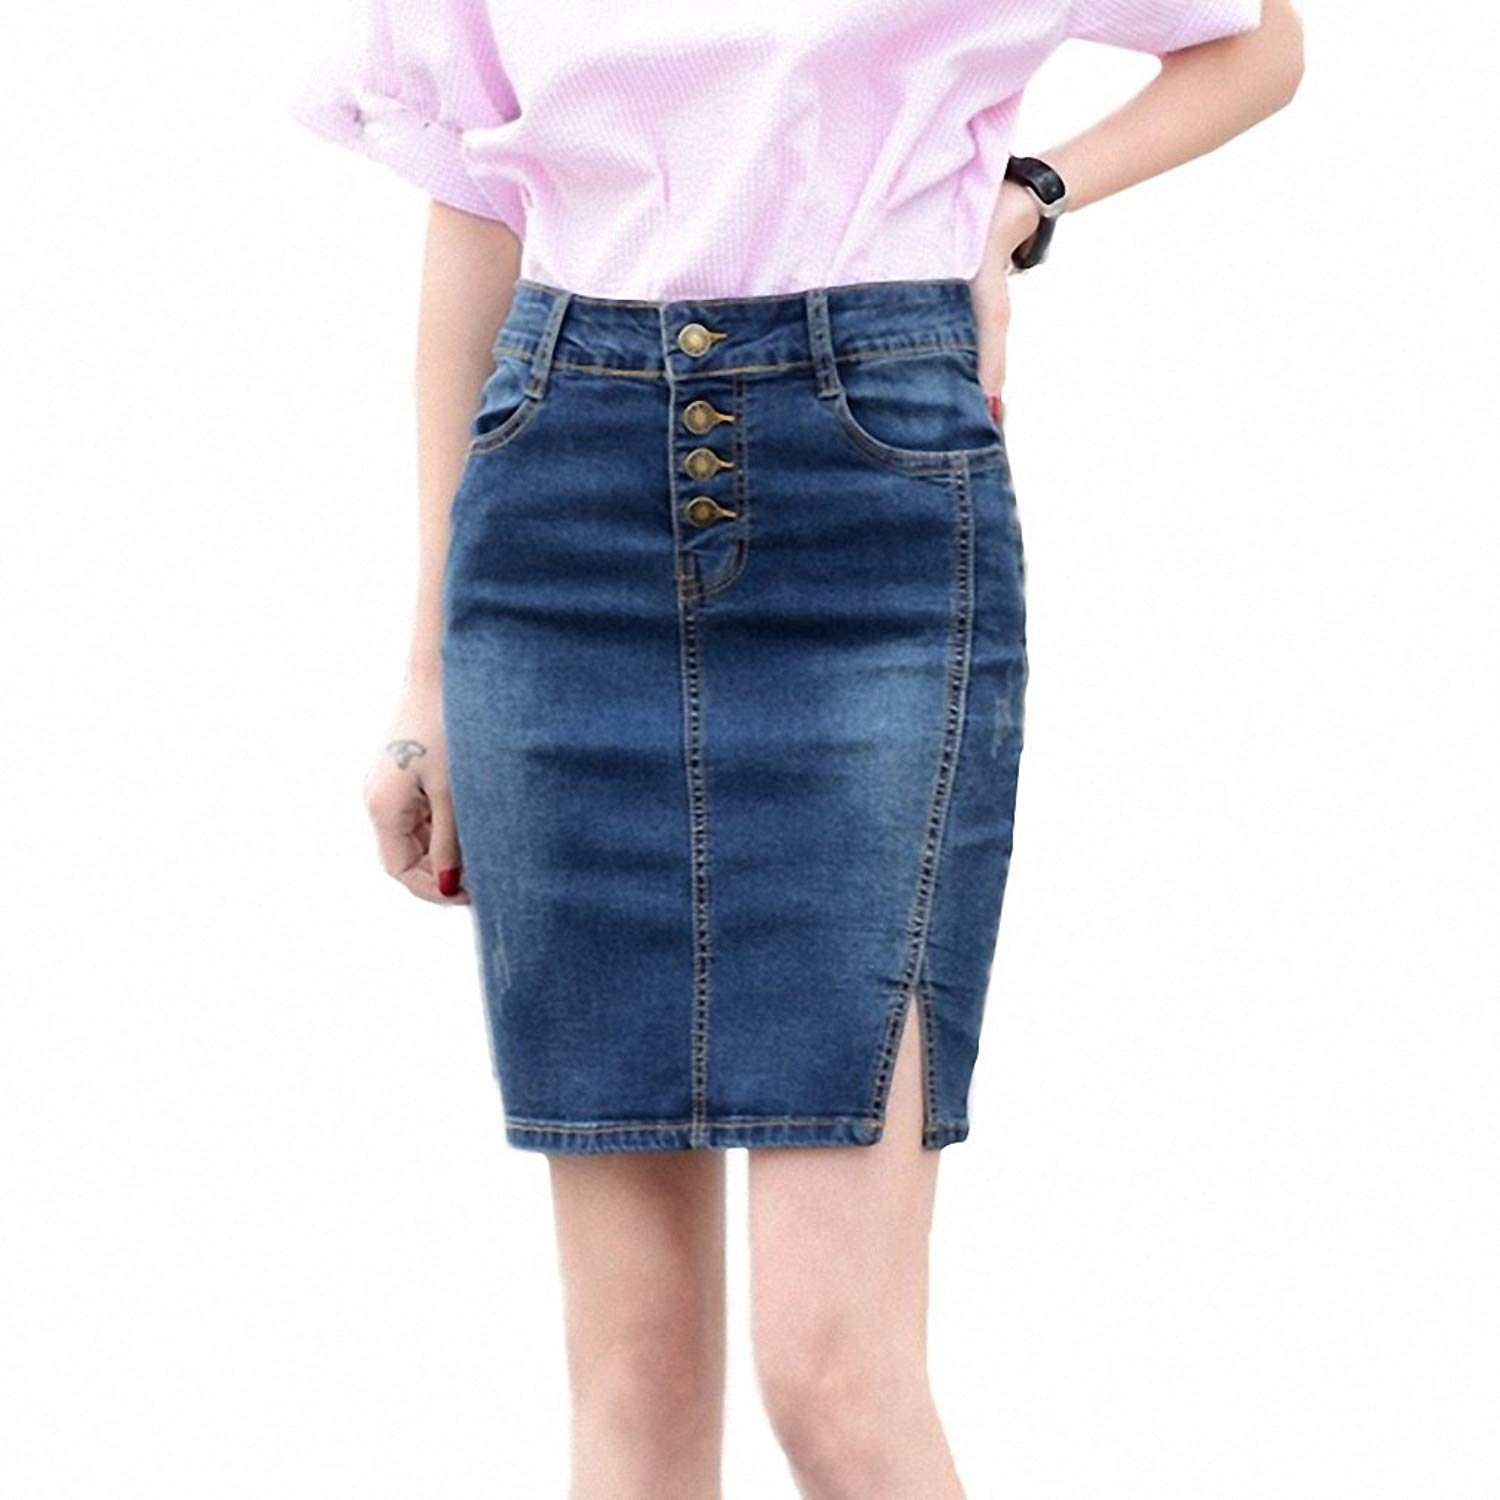 2a981ed5f26 Get Quotations · 7XL Plus Size Denim Skirt NEW Elegant Women Slim Mini Denim  Skirt Simple Sexy Side Split